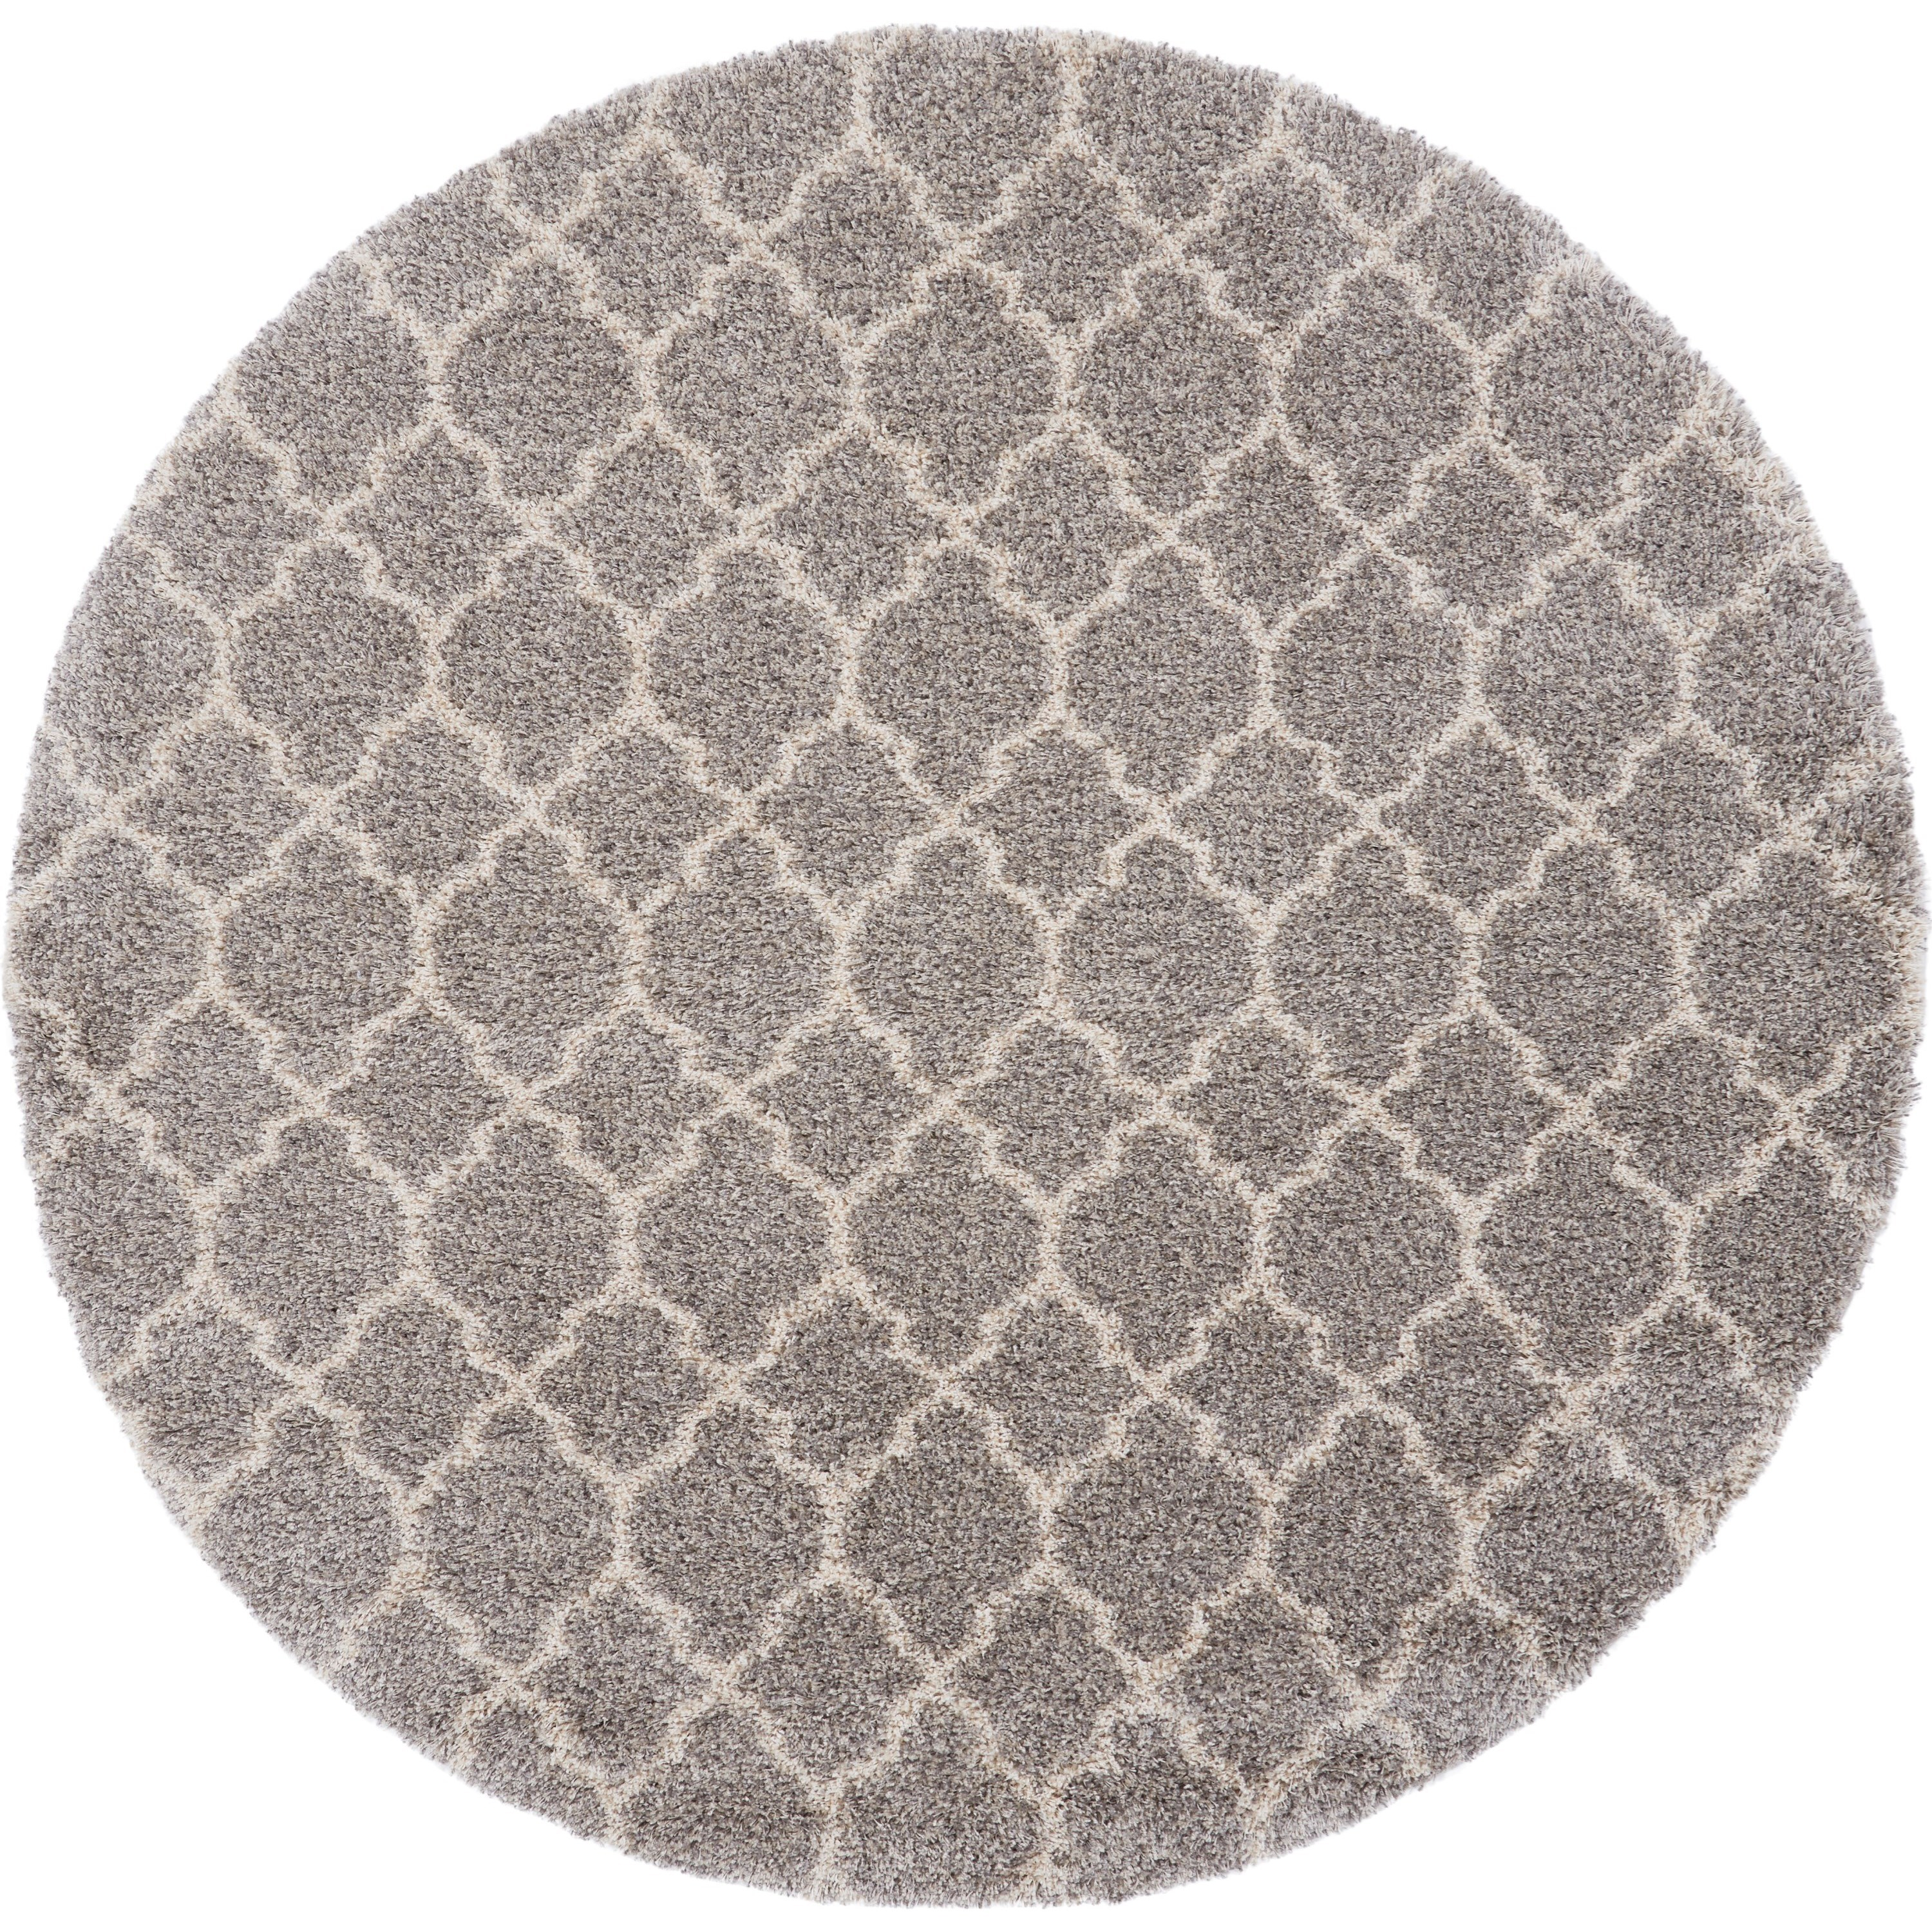 Amore 8' Round Rug by Nourison at Sprintz Furniture